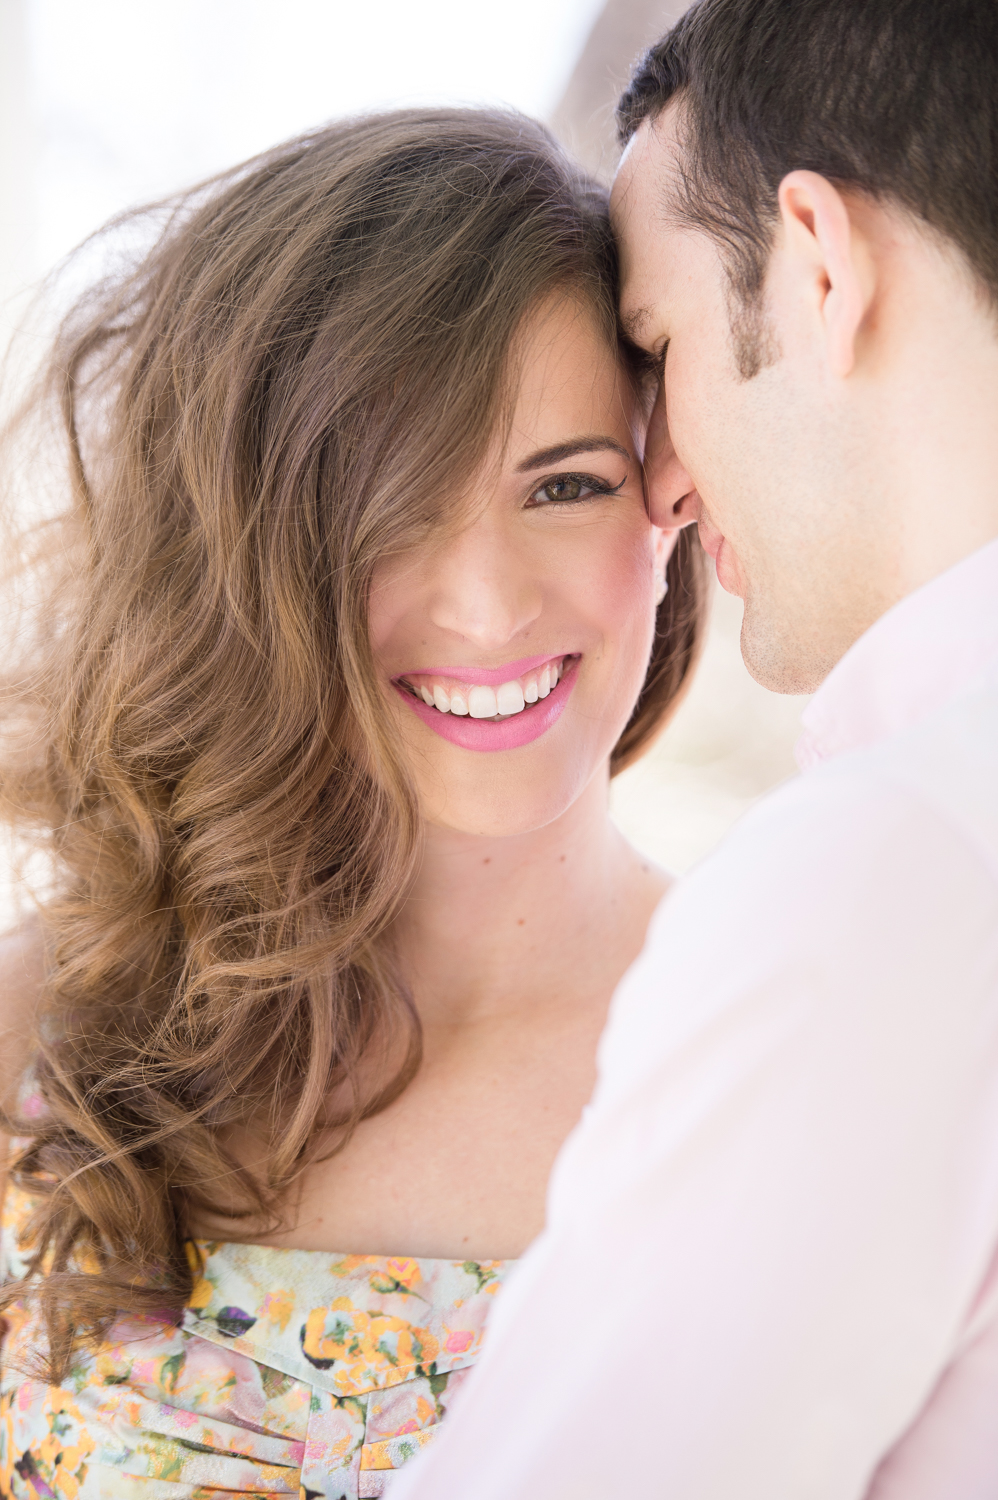 BARR_MANSION_ENGAGEMENT_SHOOT_BY_MATTHEW_MOORE_PHOTOGRAPHY_00015.jpg